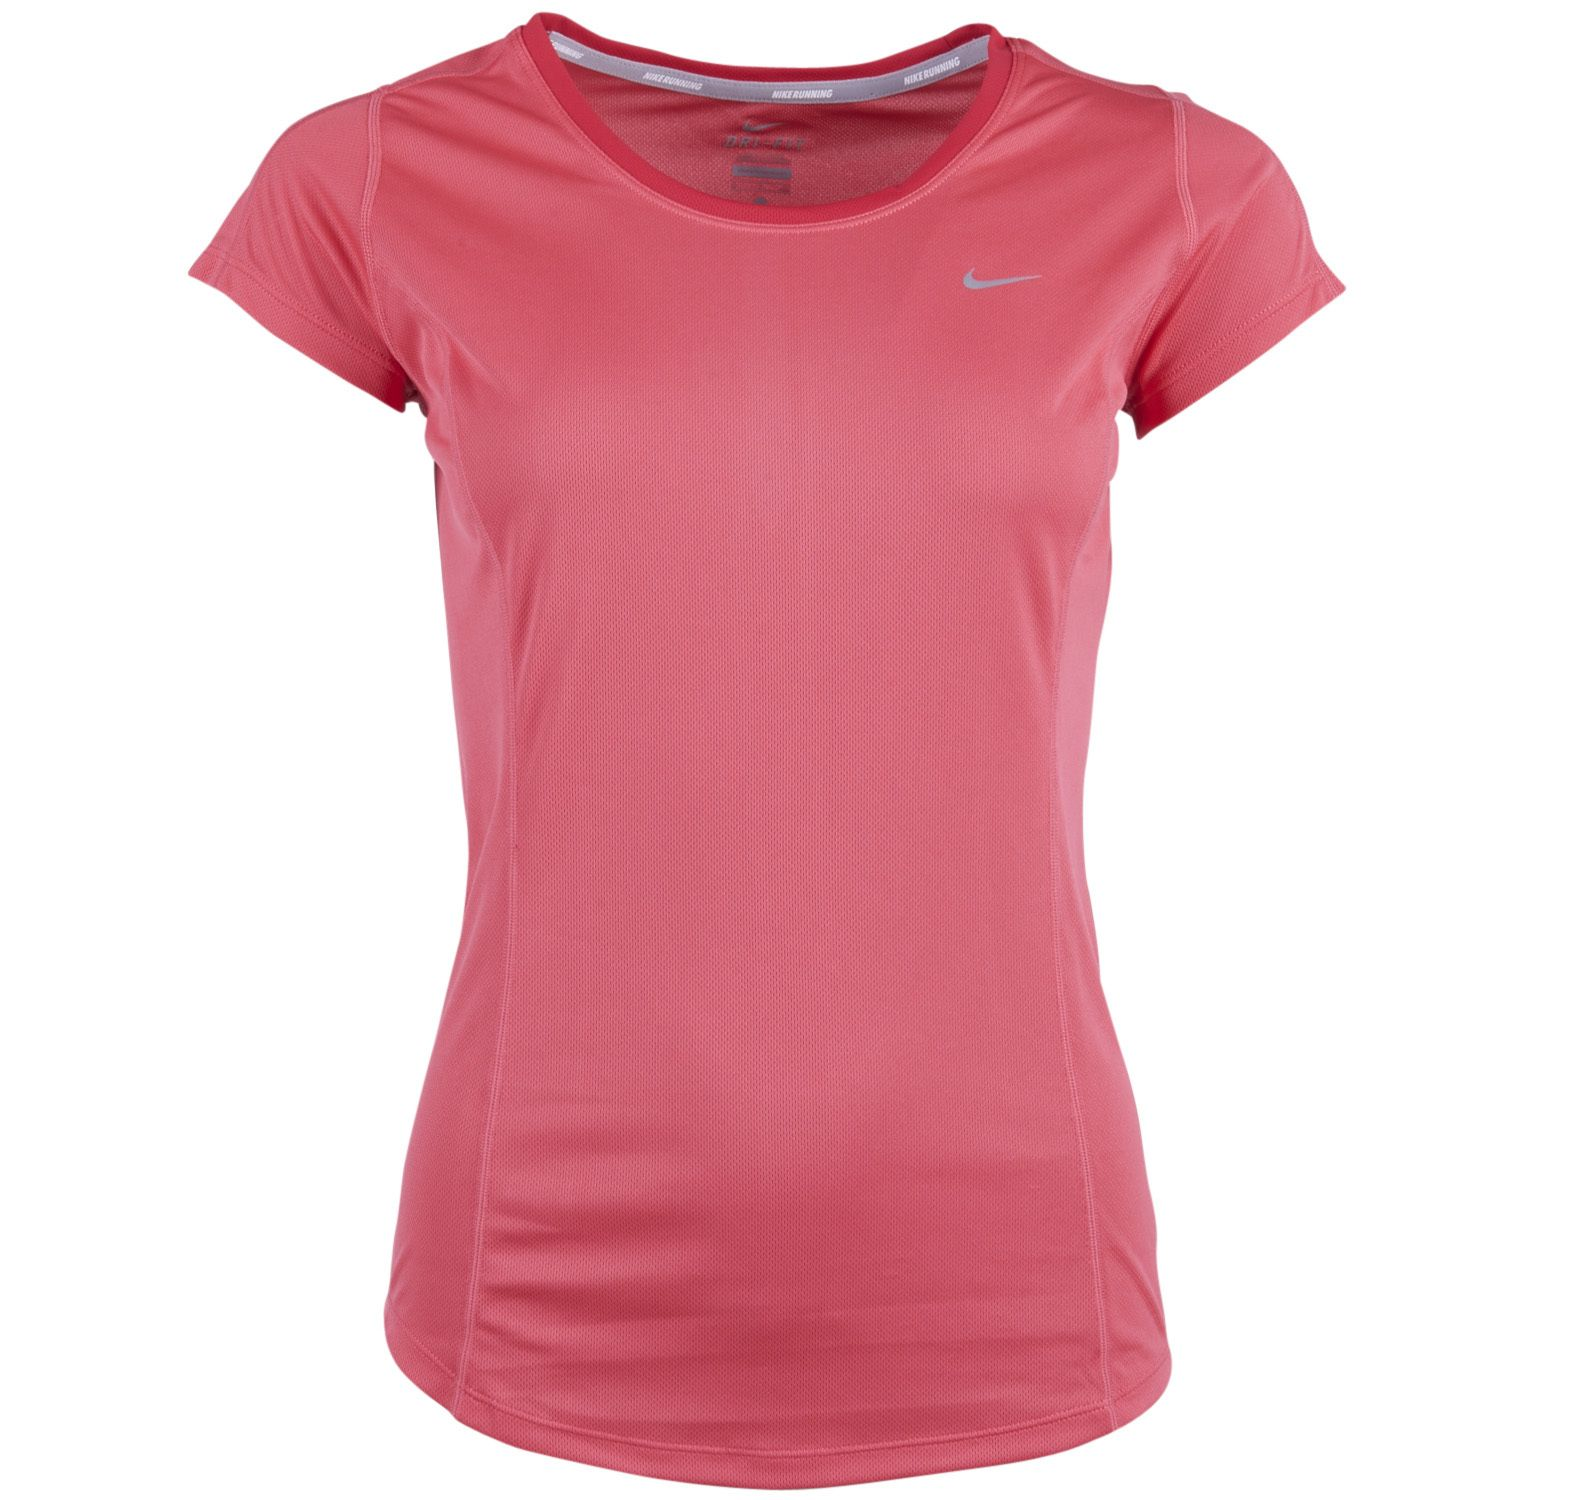 Racer Ss Top, Geranium/Legion Red/Reflective, S,  Nike